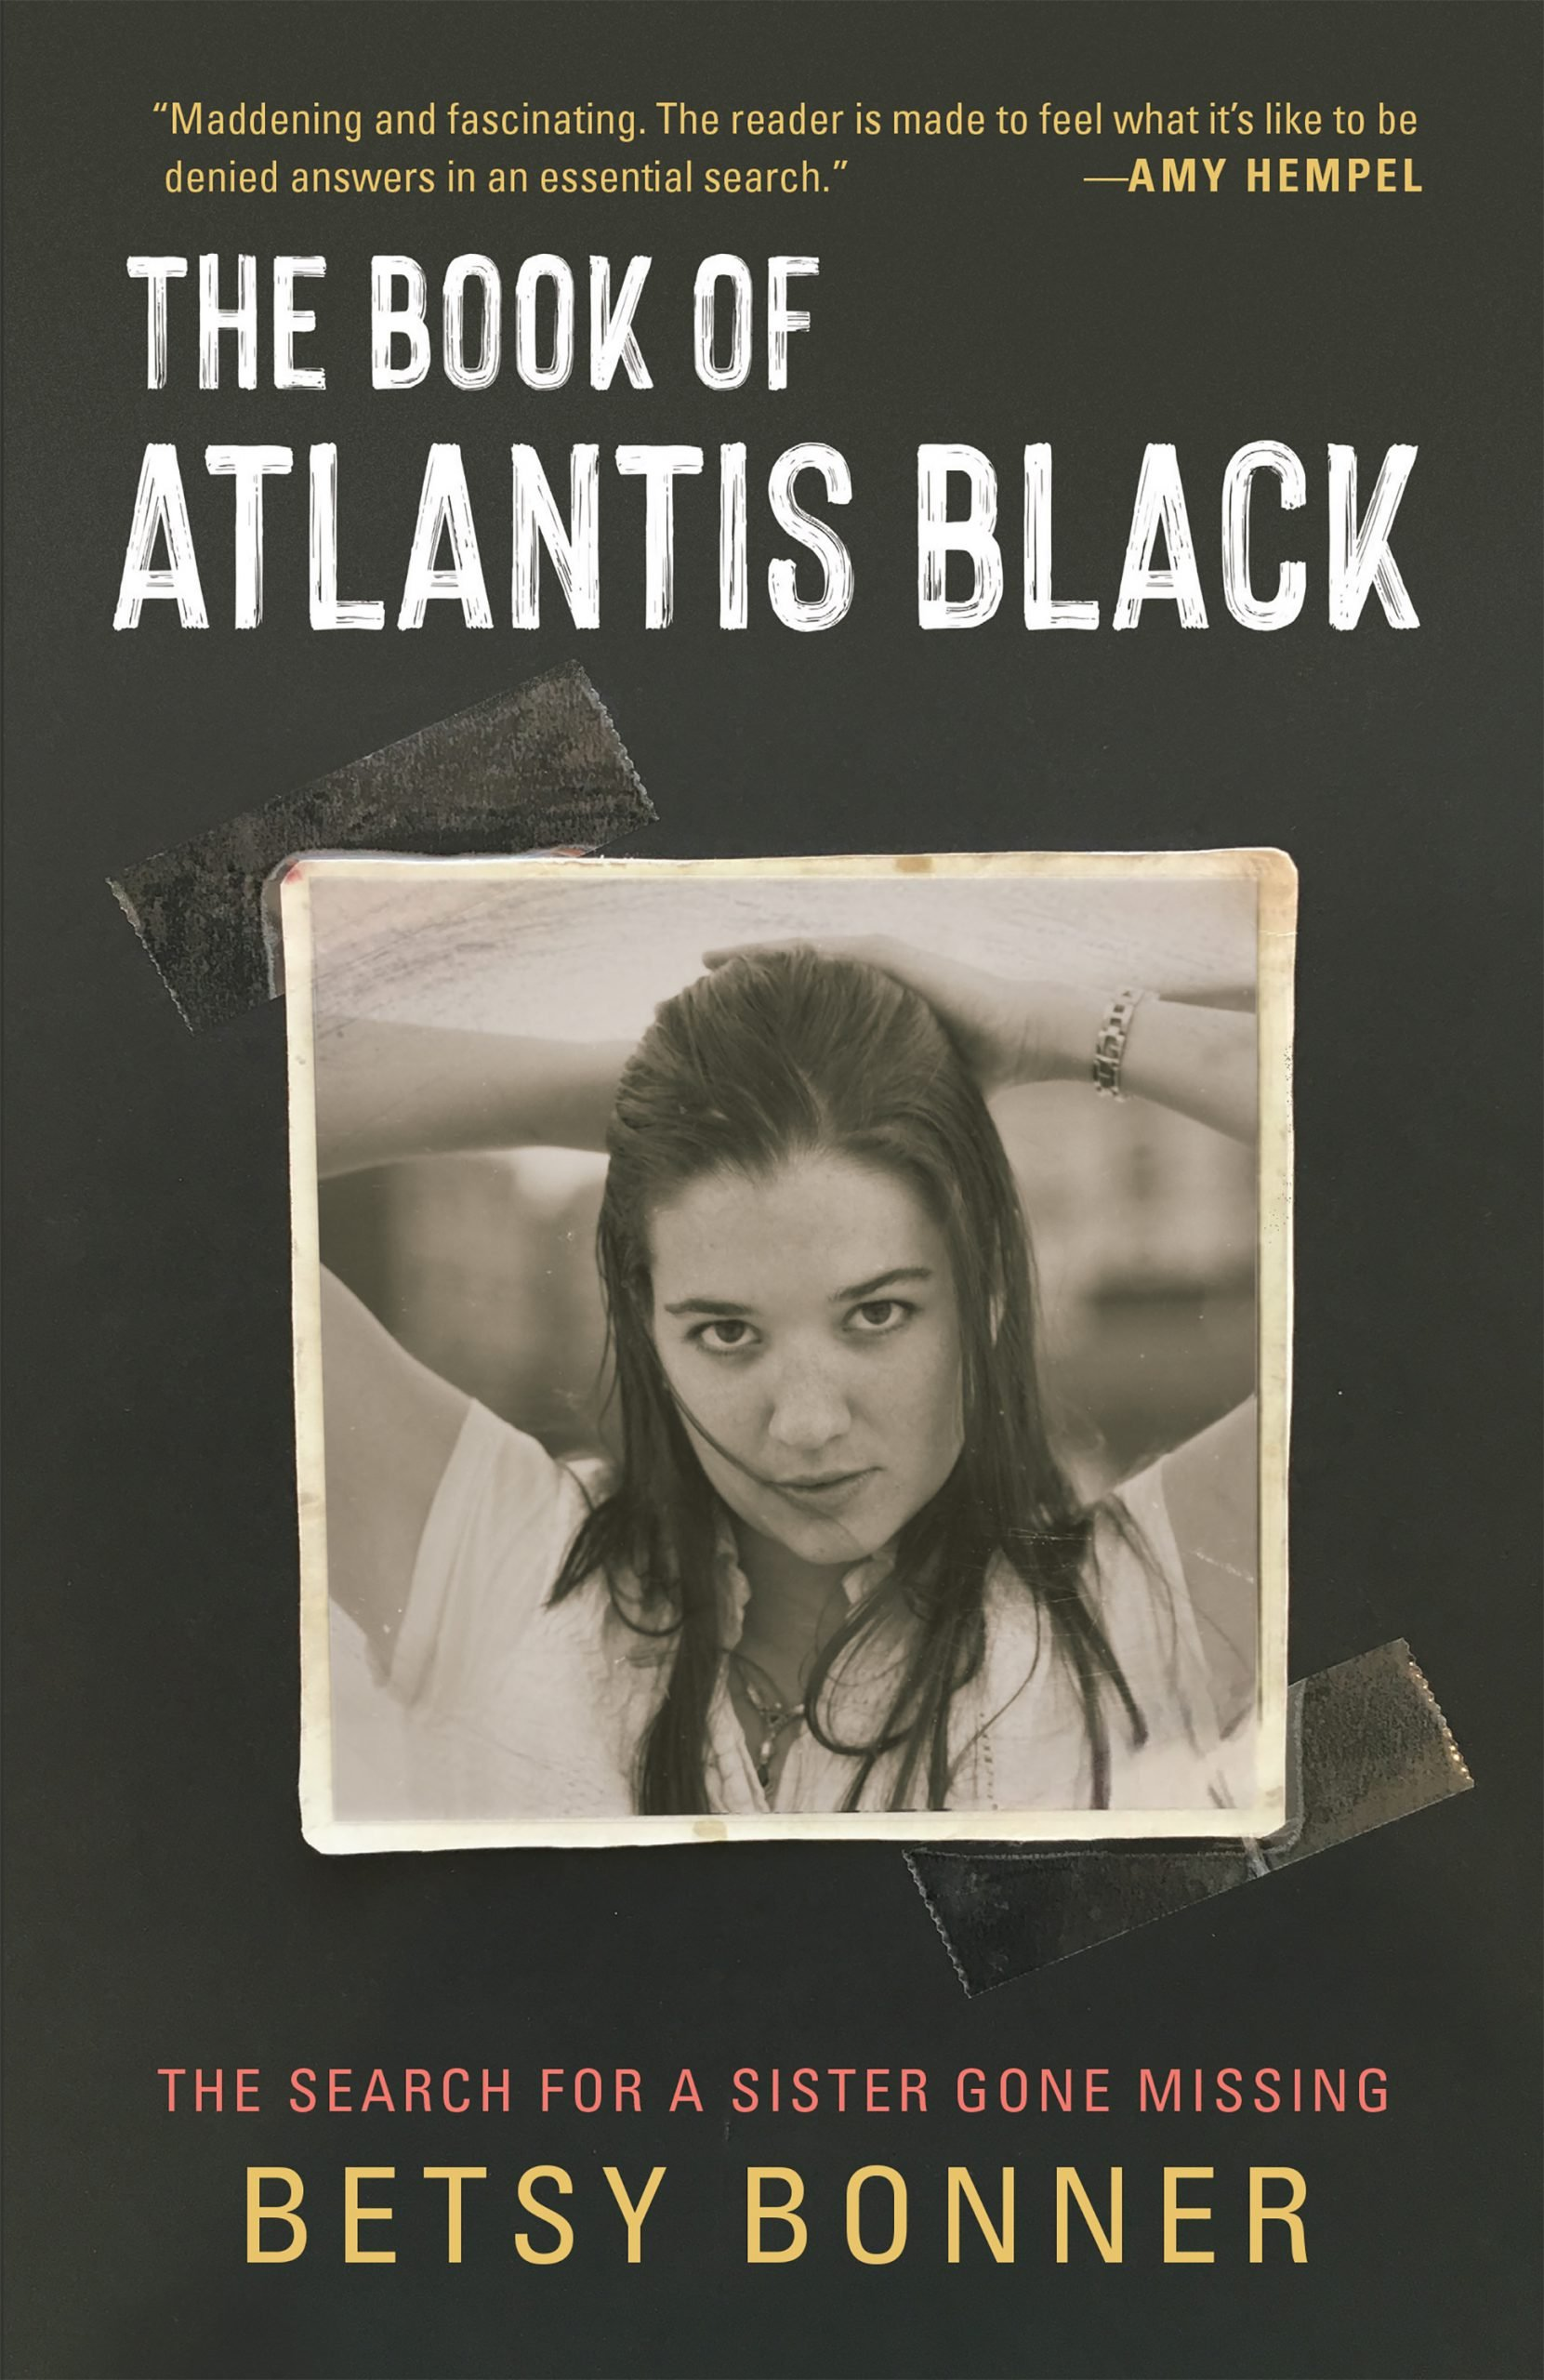 Book cover for The Book of Atlantis Black.